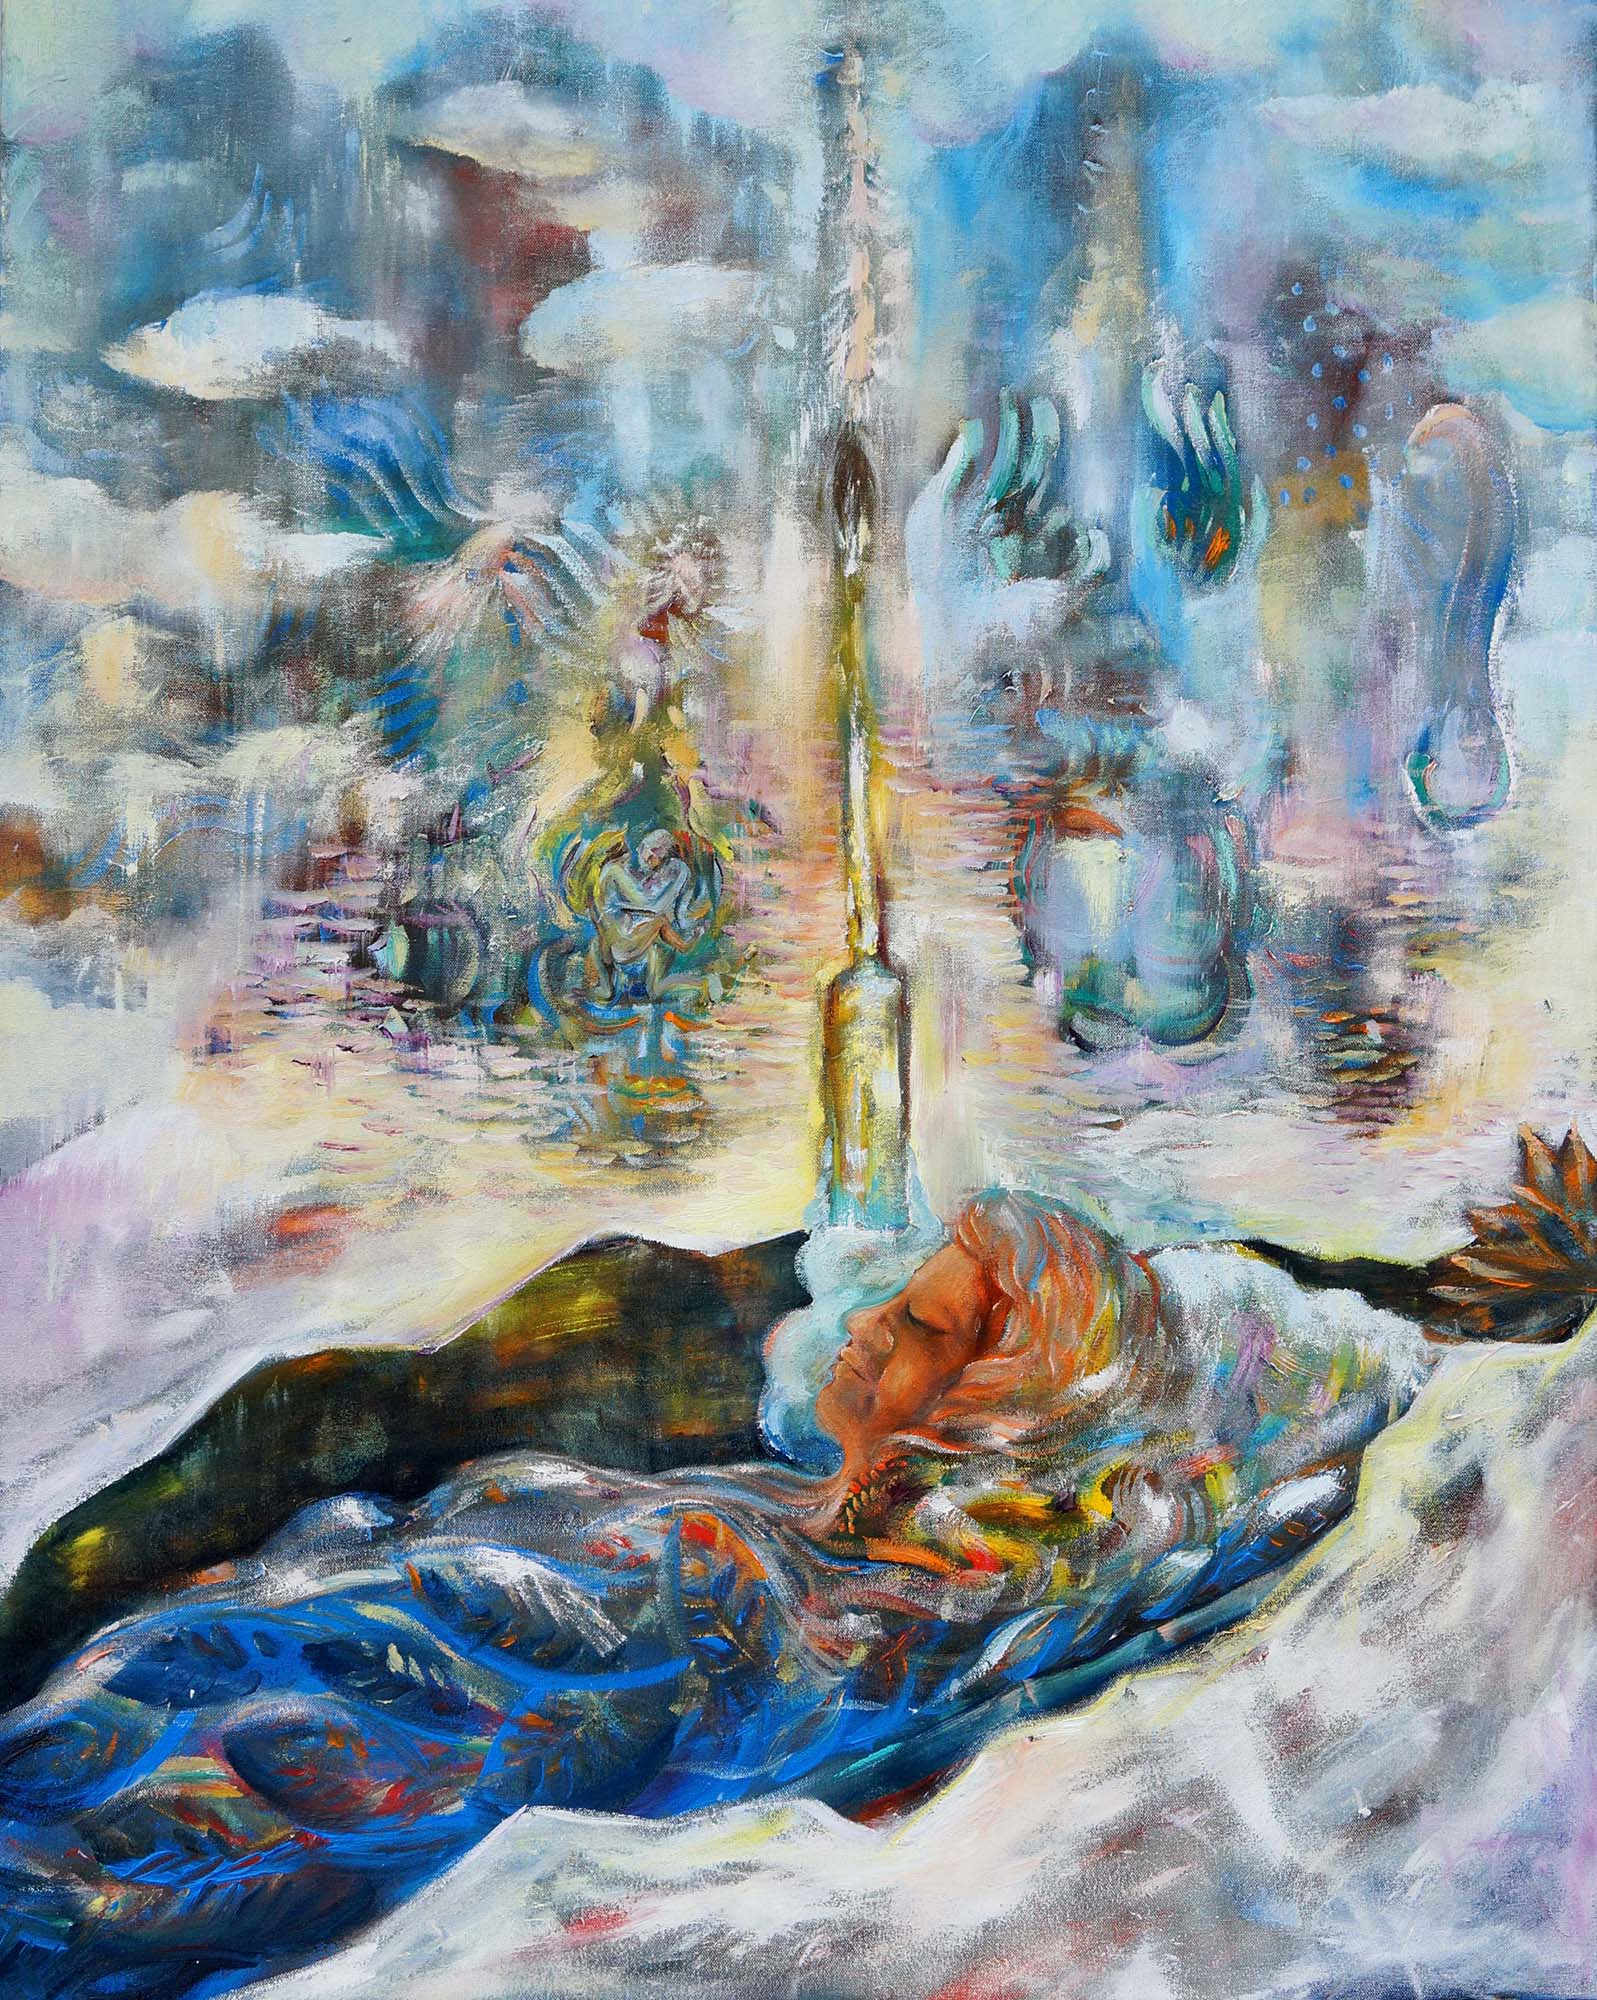 Jan Prazan, Last Journey, Oil on canvas, 100 x 80 cm, 2016